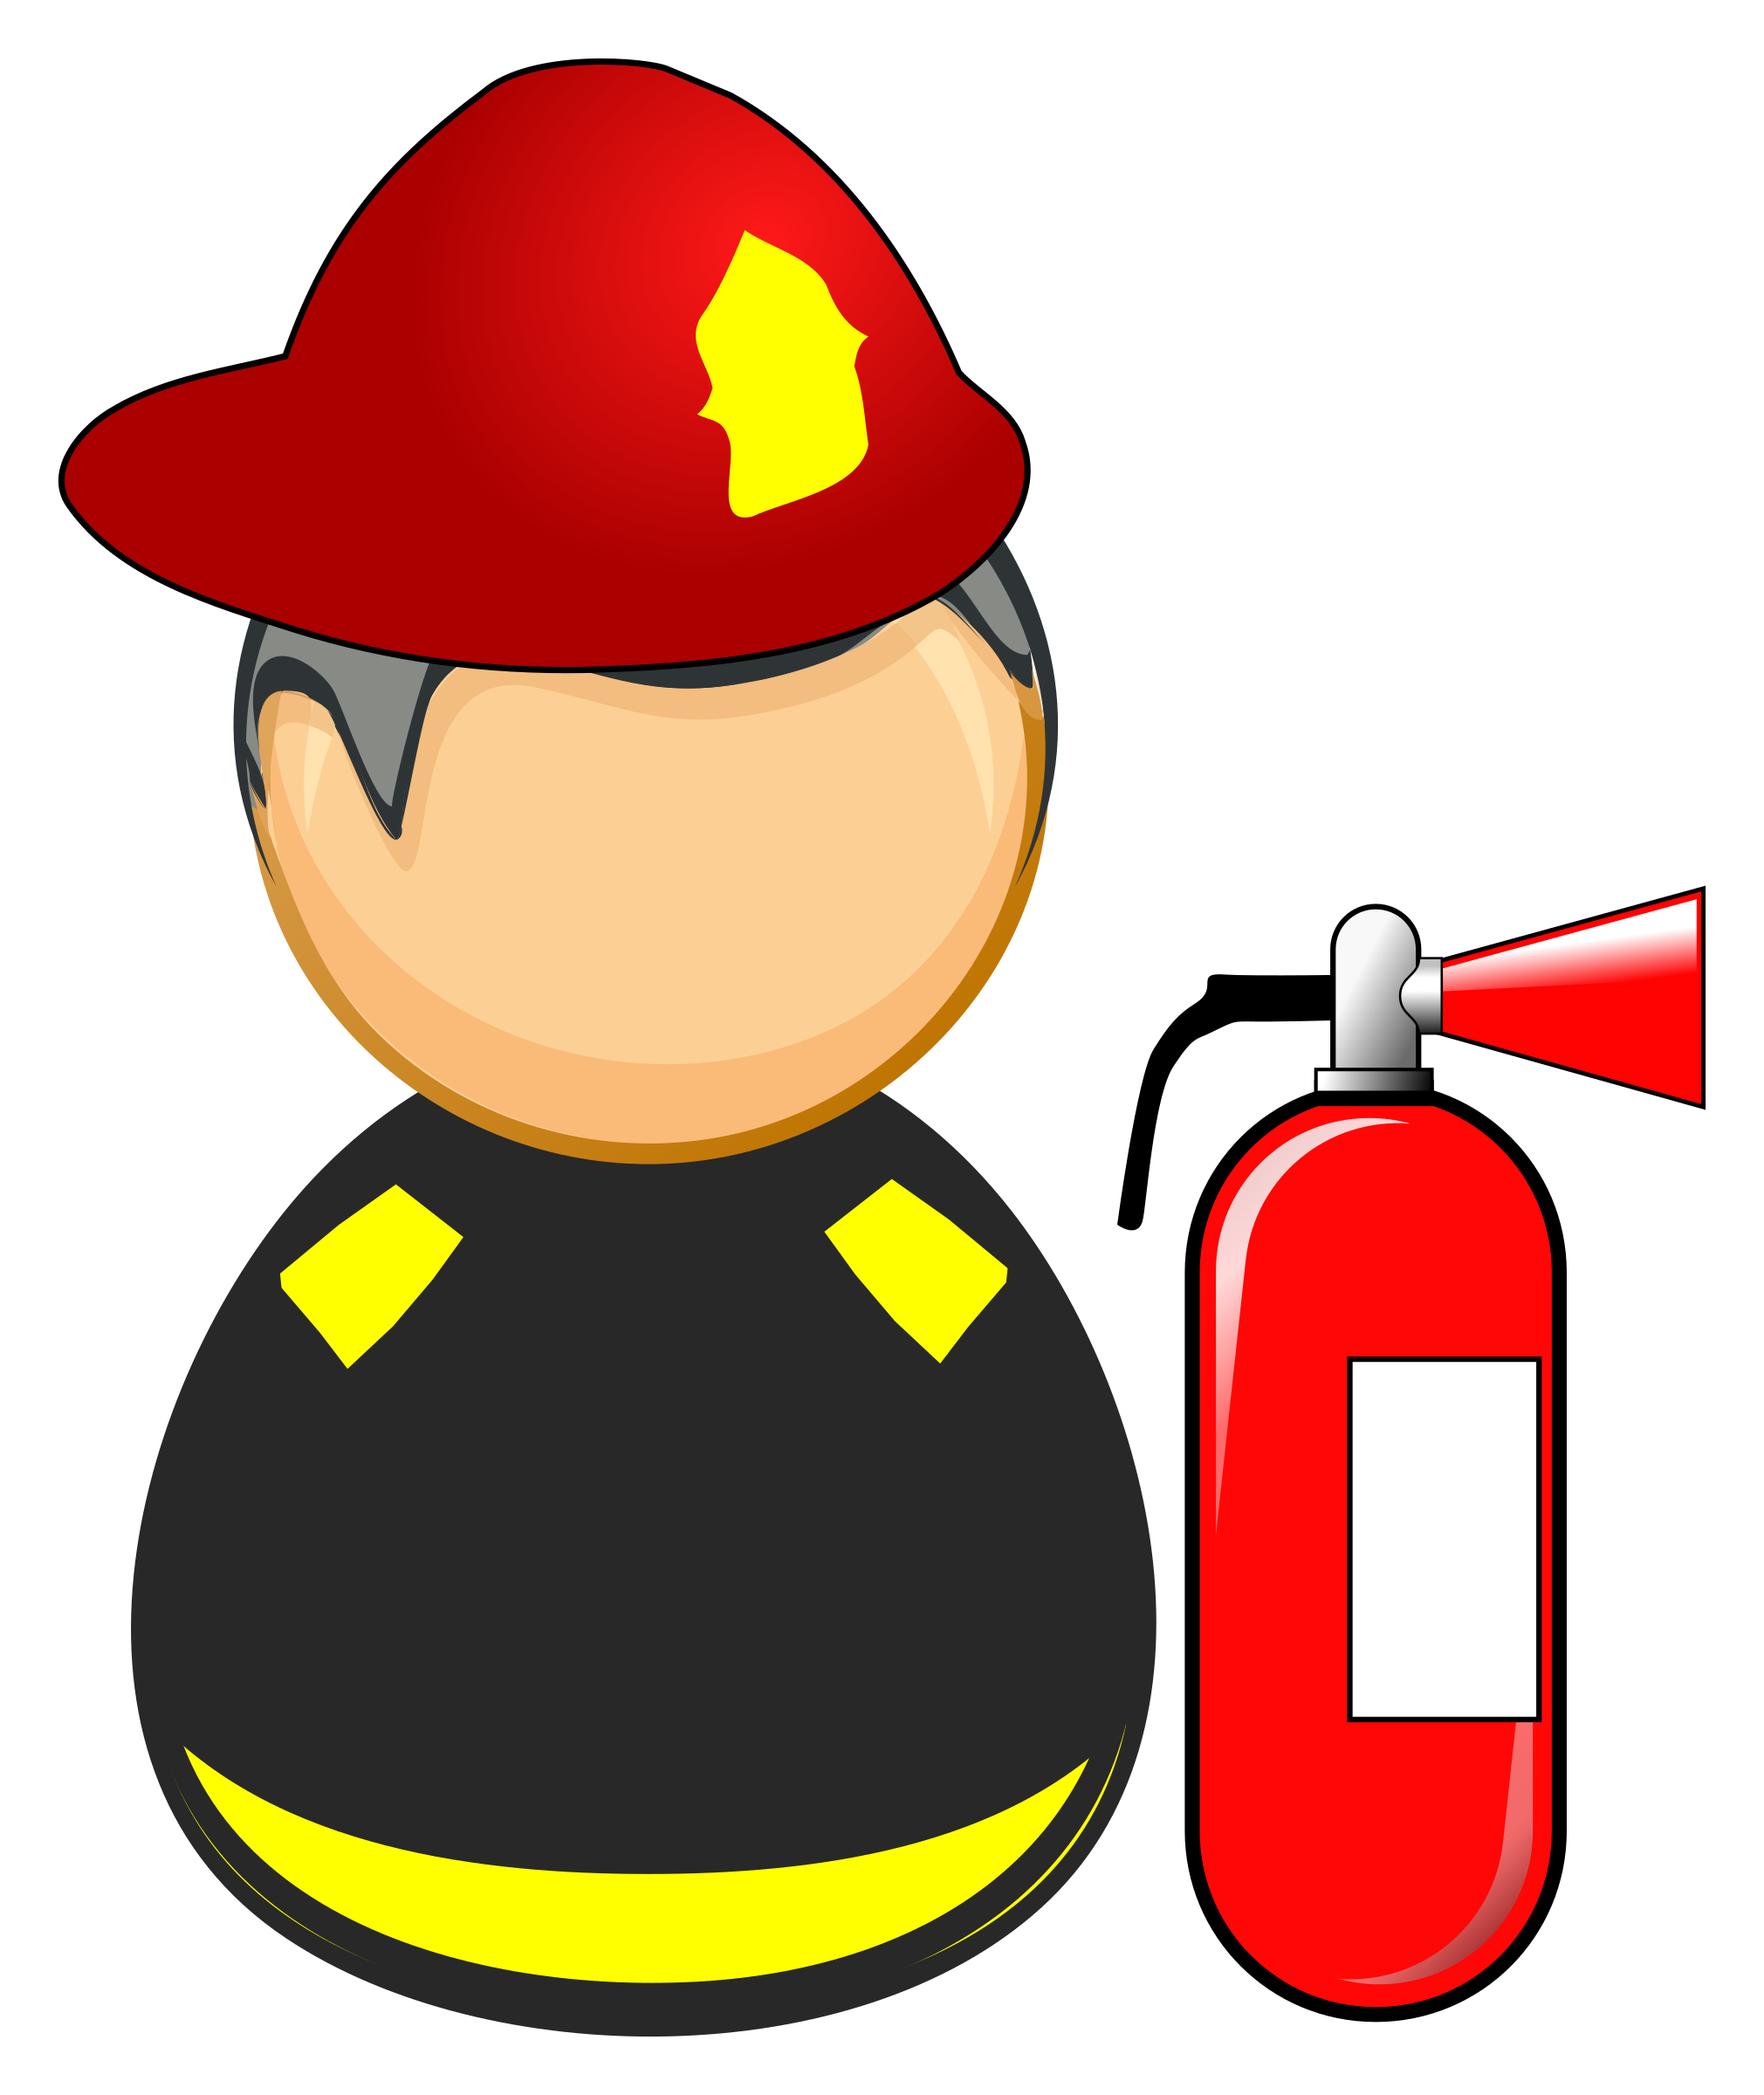 Firefighter kneeling at the cross clipart clip art transparent stock Firefighter Silhouette Clip Art at GetDrawings.com | Free for ... clip art transparent stock